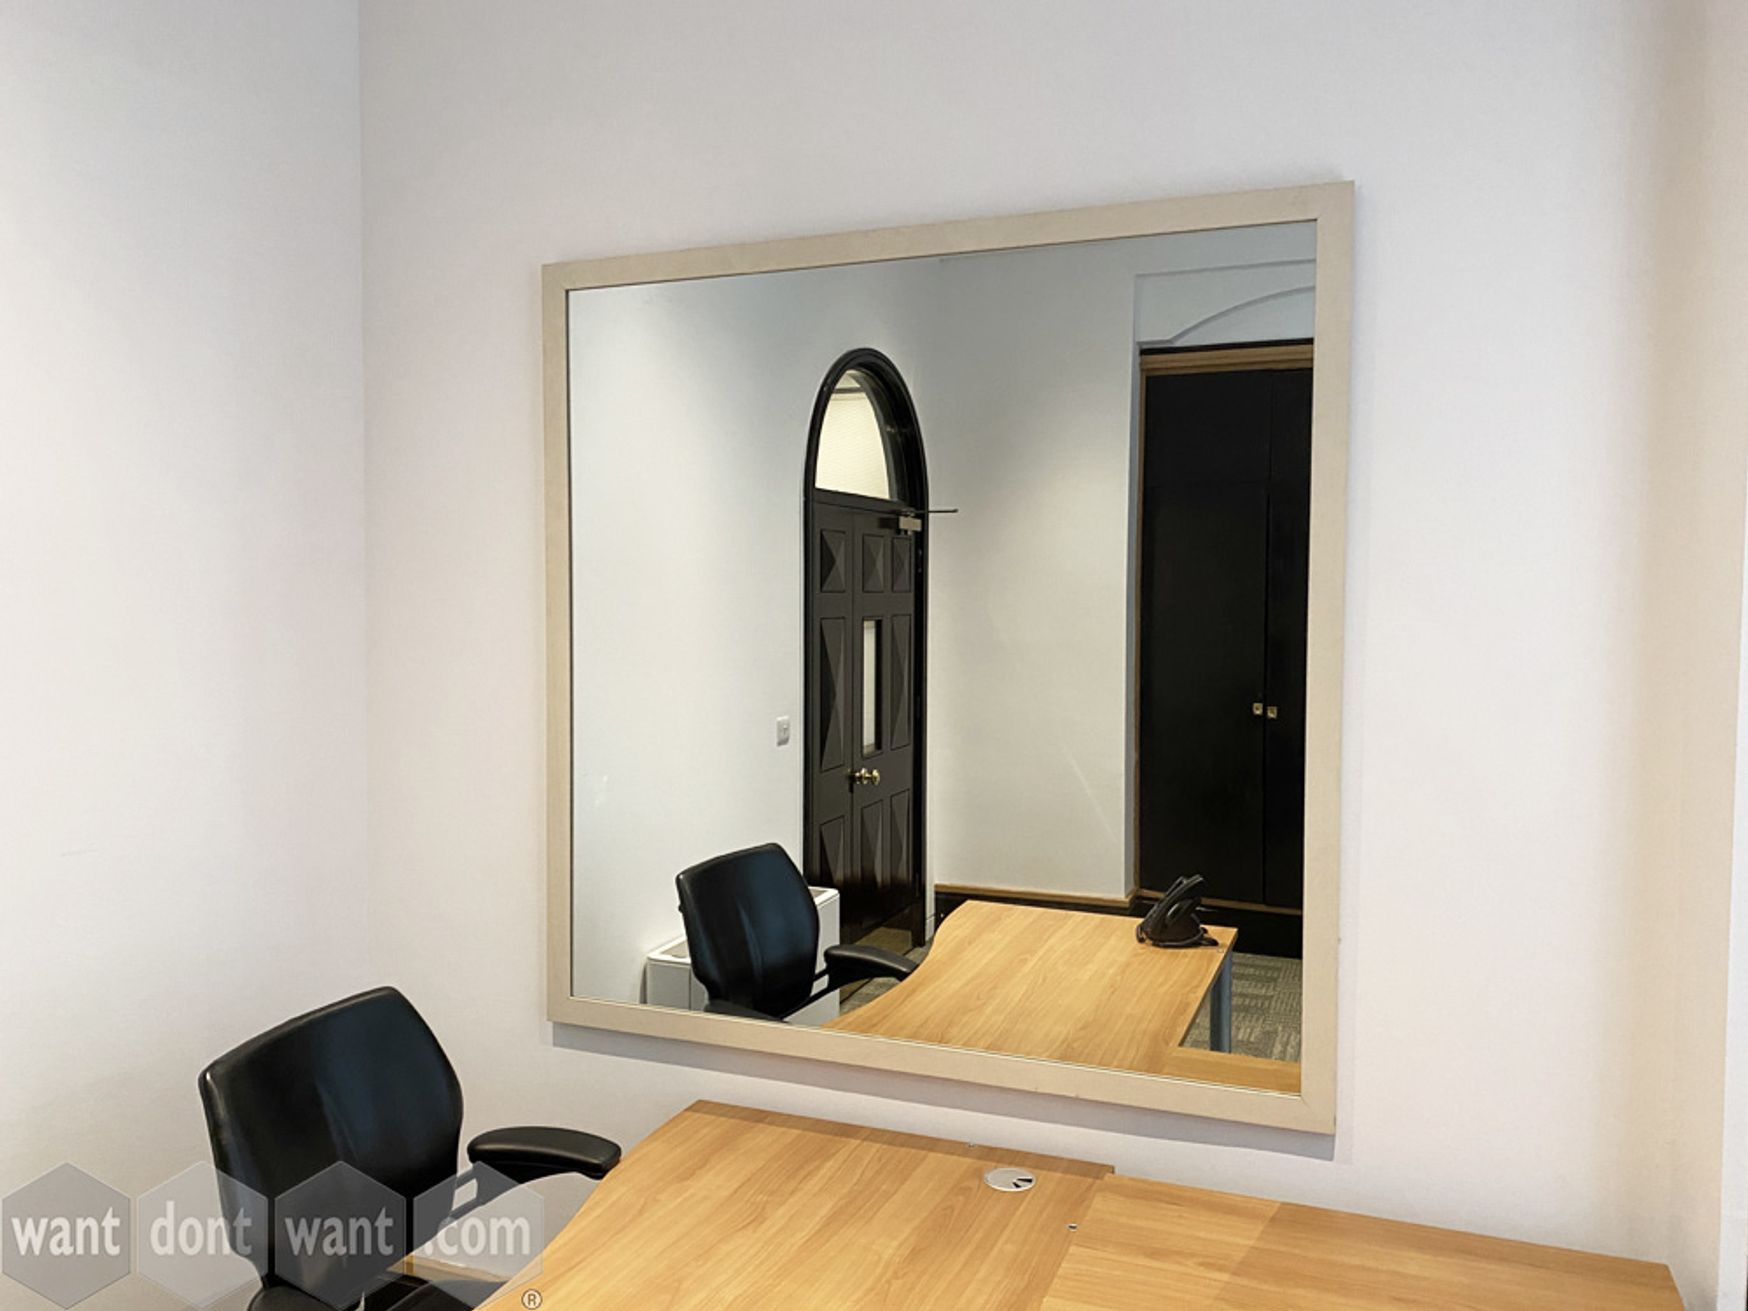 Used large square mirror - 1500mm w x 1500mm high